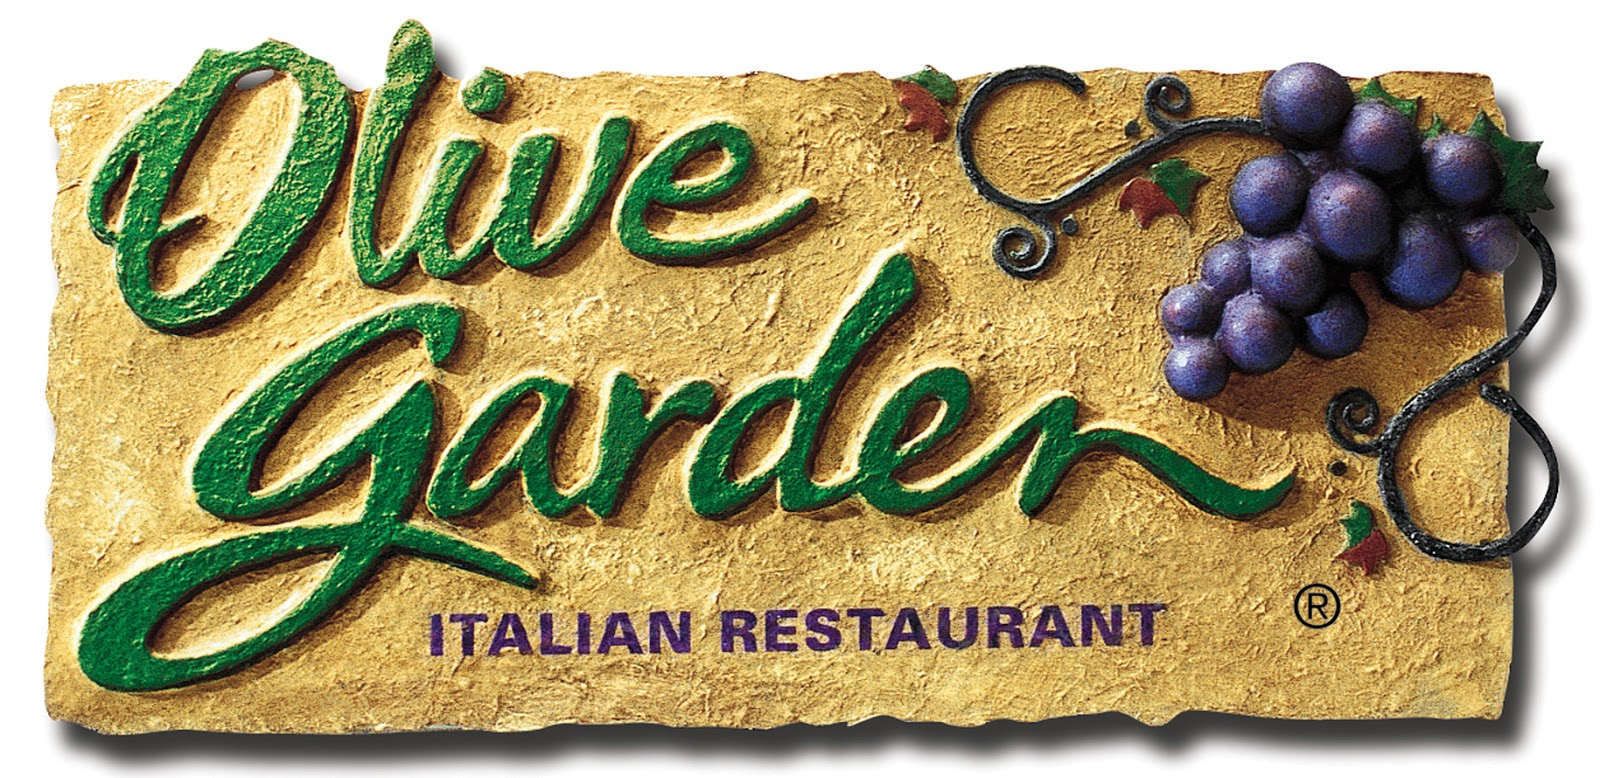 Hthvf Olive Garden Continue To Give